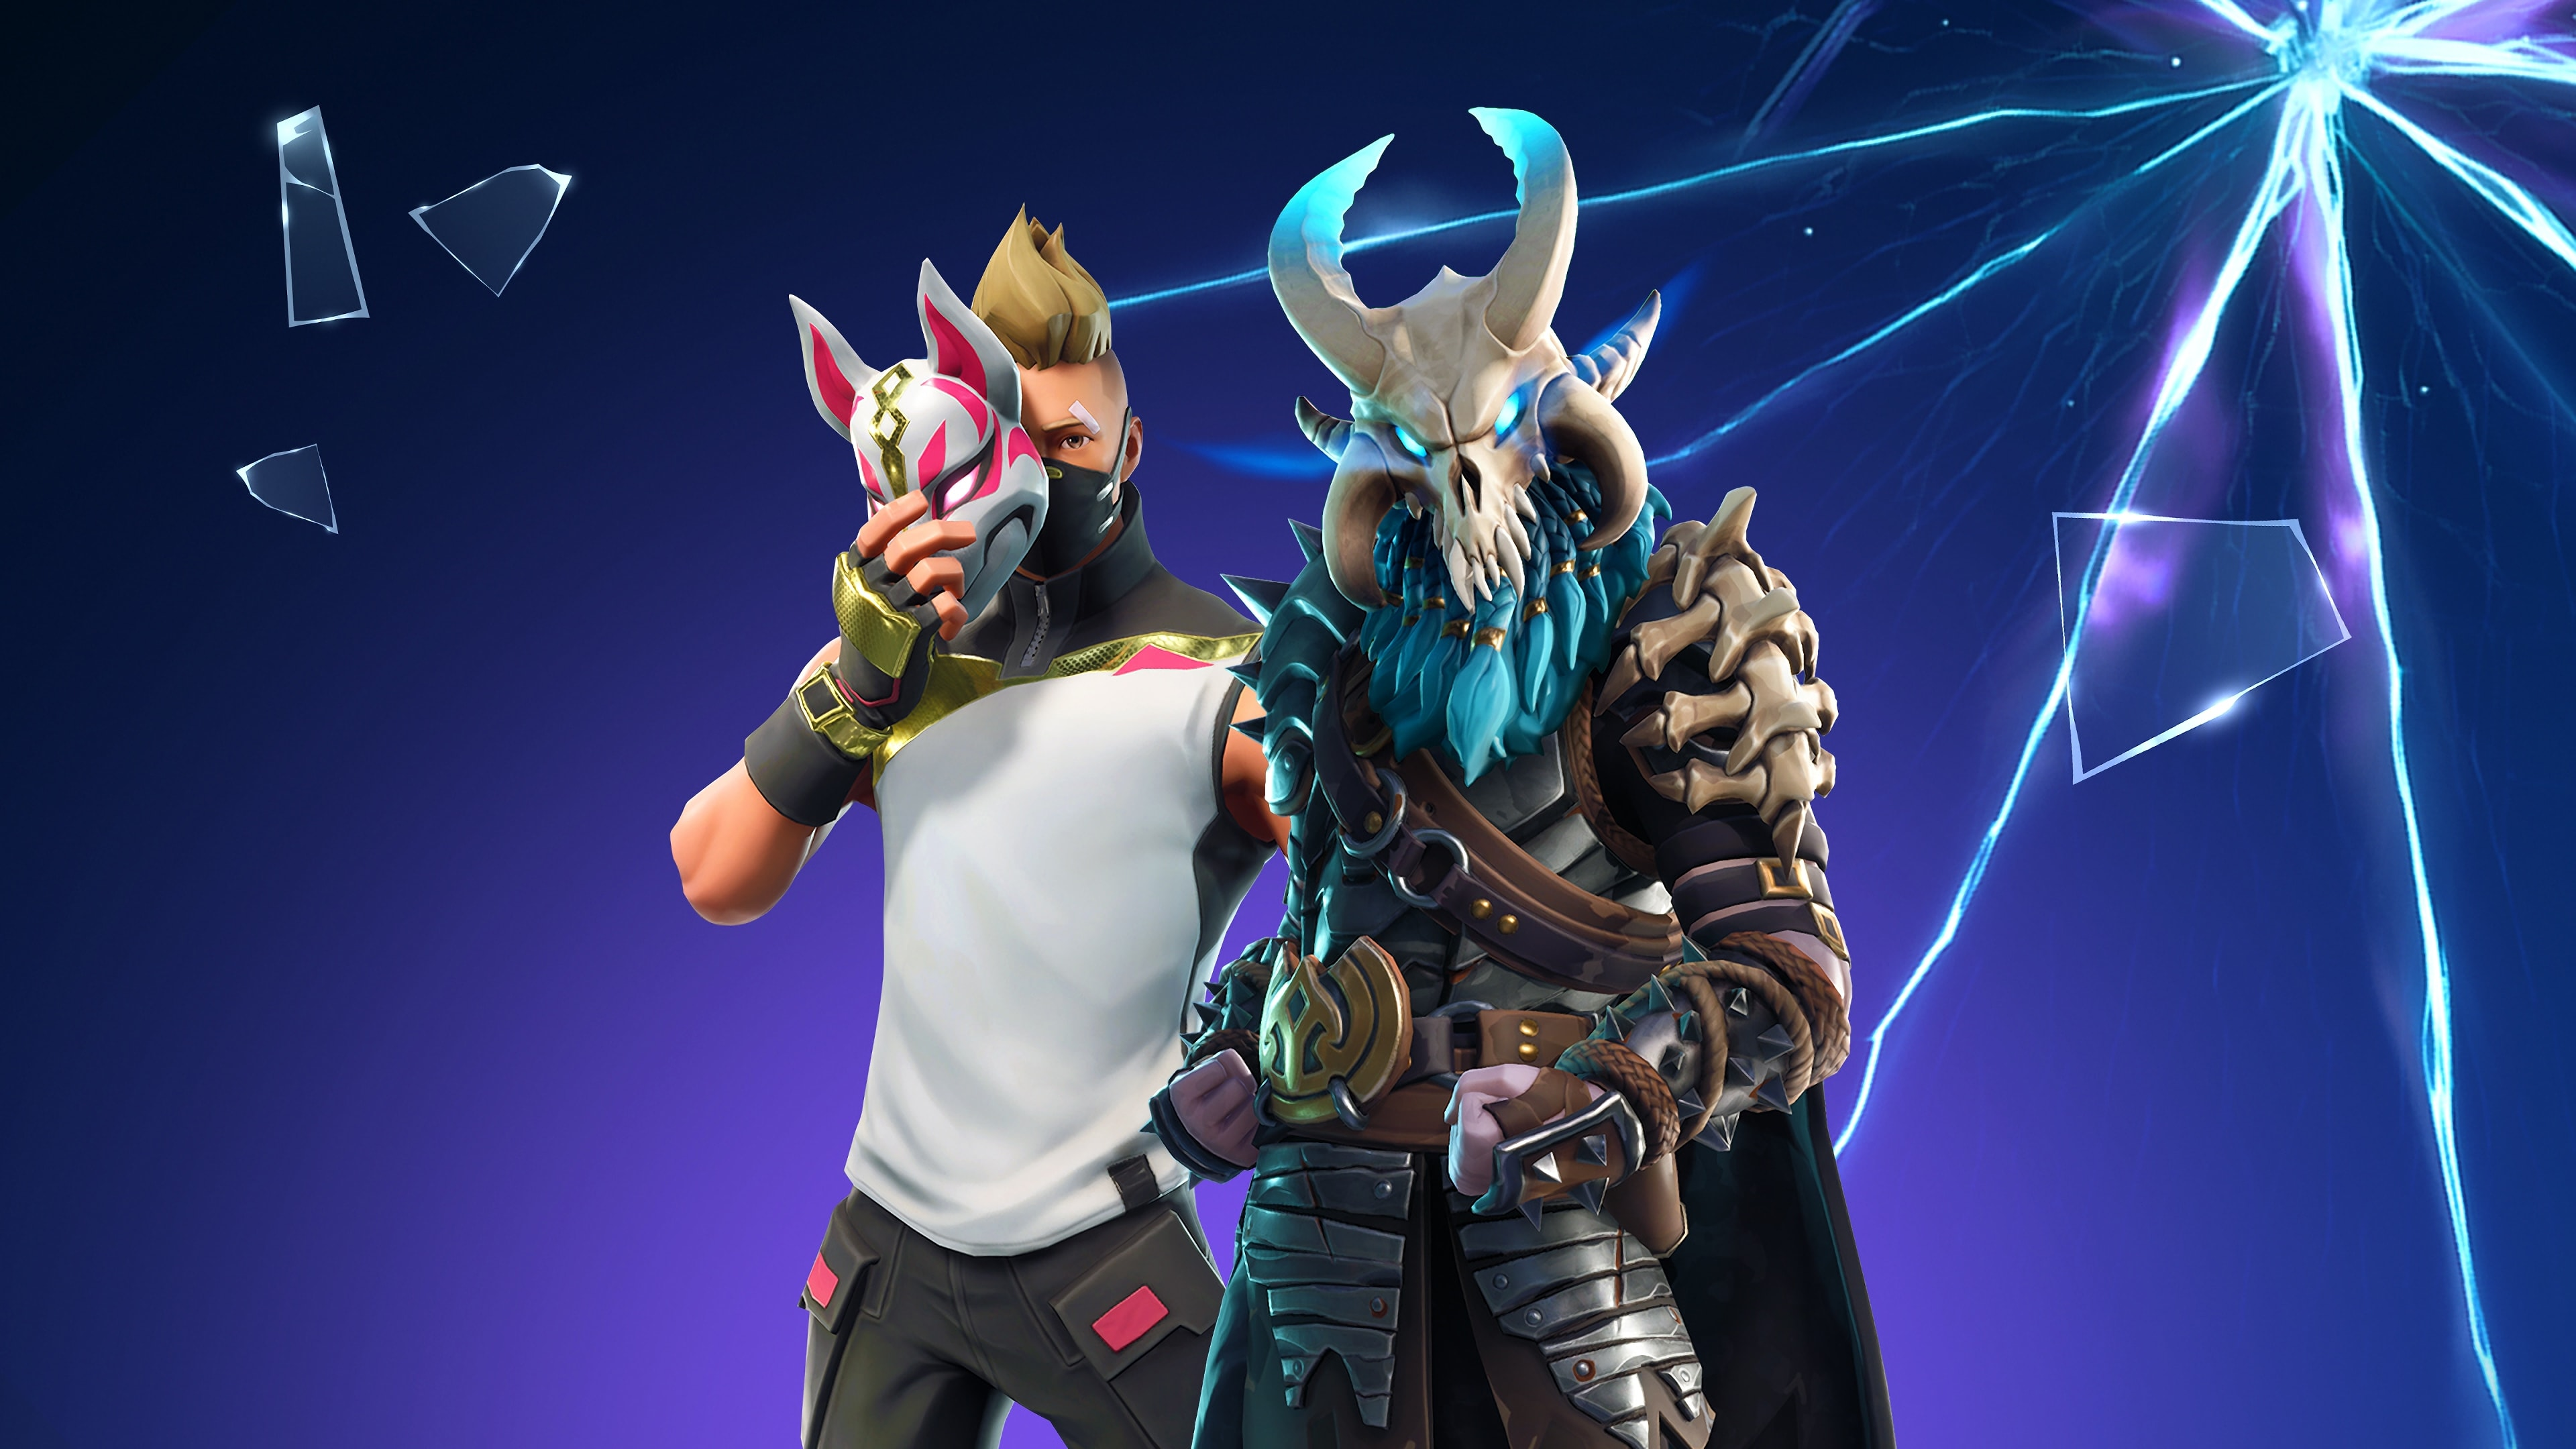 Fortnite Wallpaper For Pc Posted By Ethan Anderson